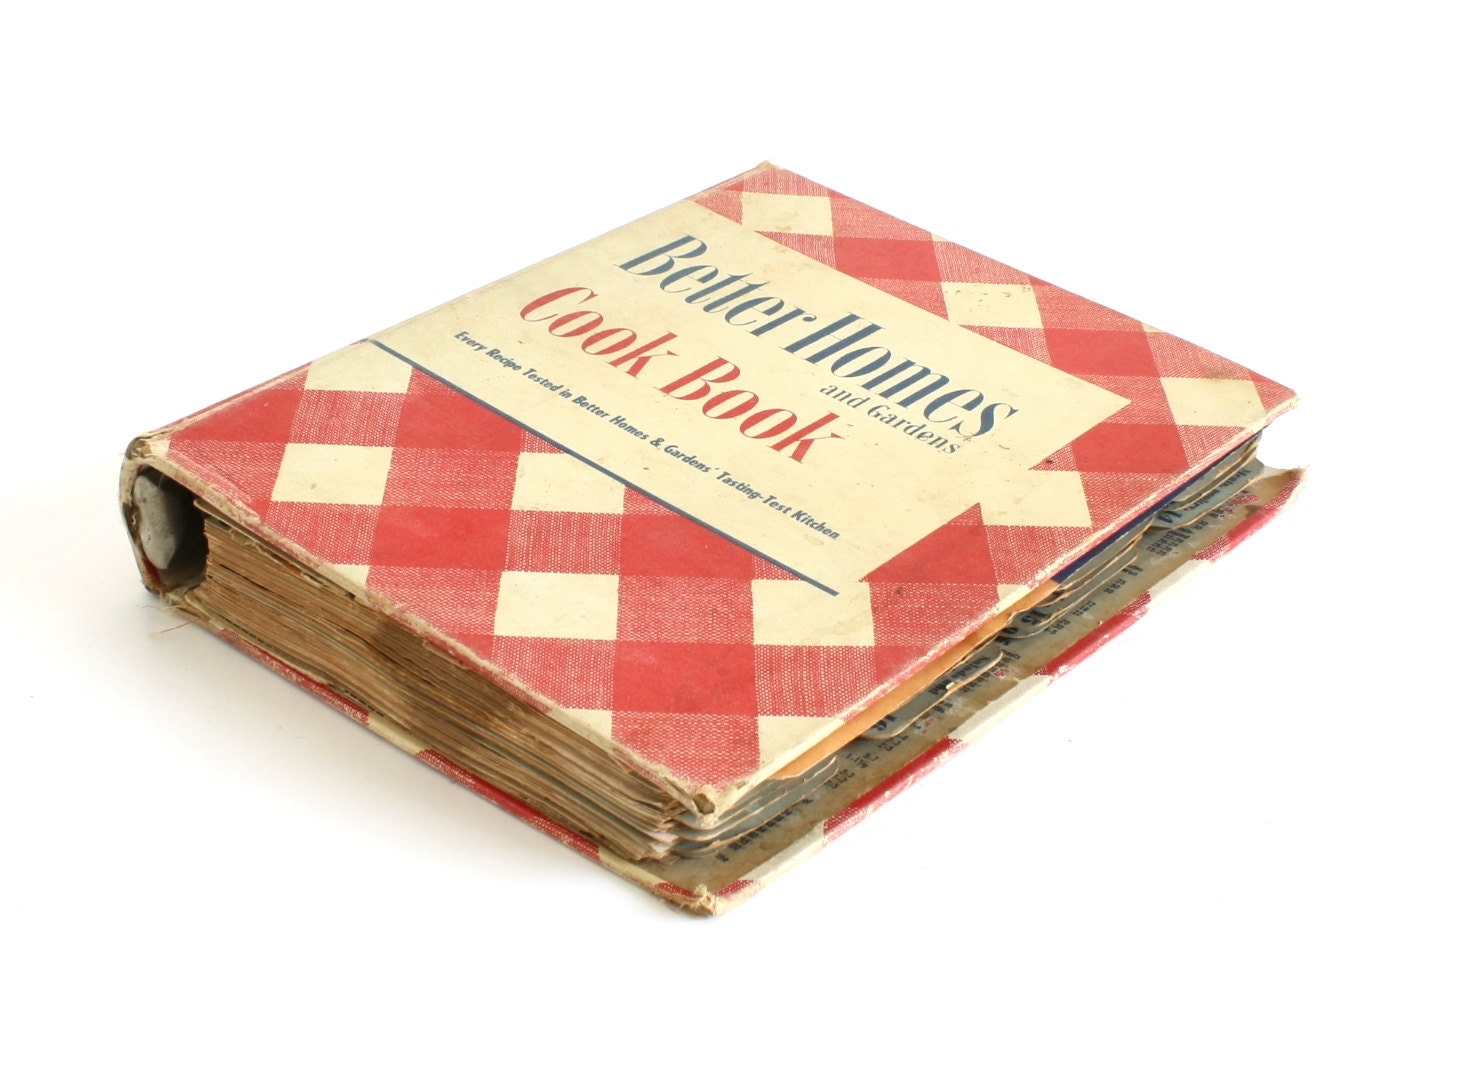 Better Homes And Gardens Test Kitchen Better Homes Gardens Cookbook Recipe Binder 1941 1951 Red